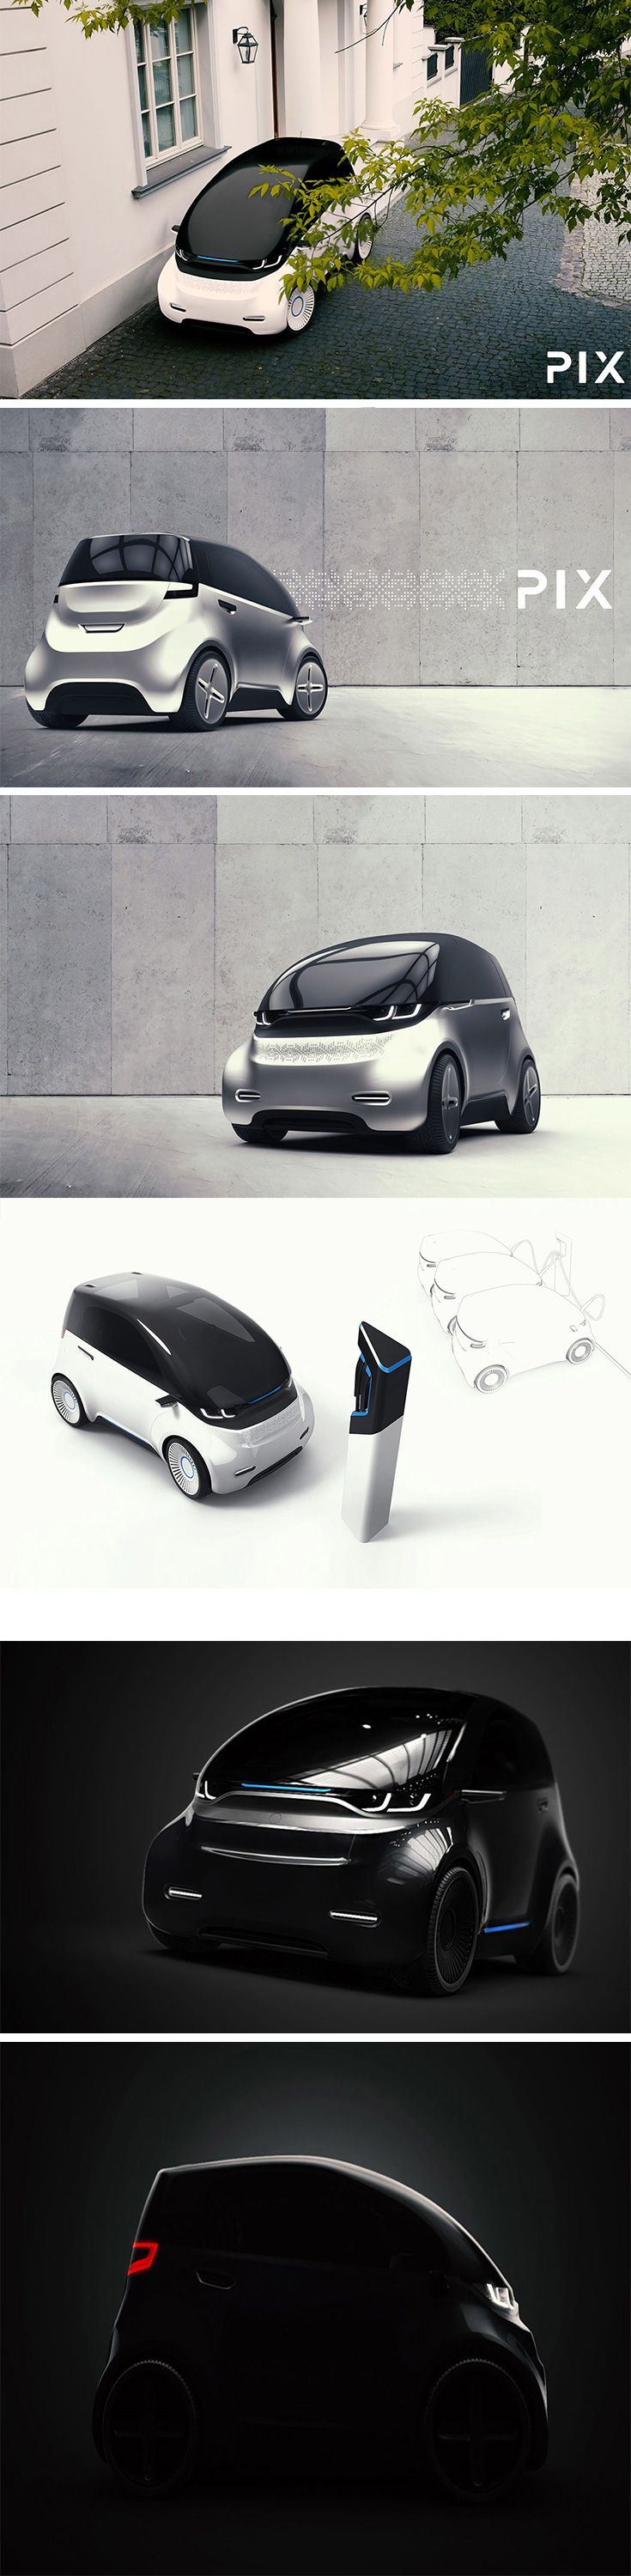 """Introducing, PIX – the first car concept to come from Polish electromobility company 2sympleks. They're calling it a """"short electric urban vehicle"""" and that  pretty much sums it up! It's about half the size of a standard SUV, all electric, and ideal for zipping around the city. Aesthetically, it's just plain  adorable. It sports soft curves, and an inviting """"face"""" that almost seems to smile!"""